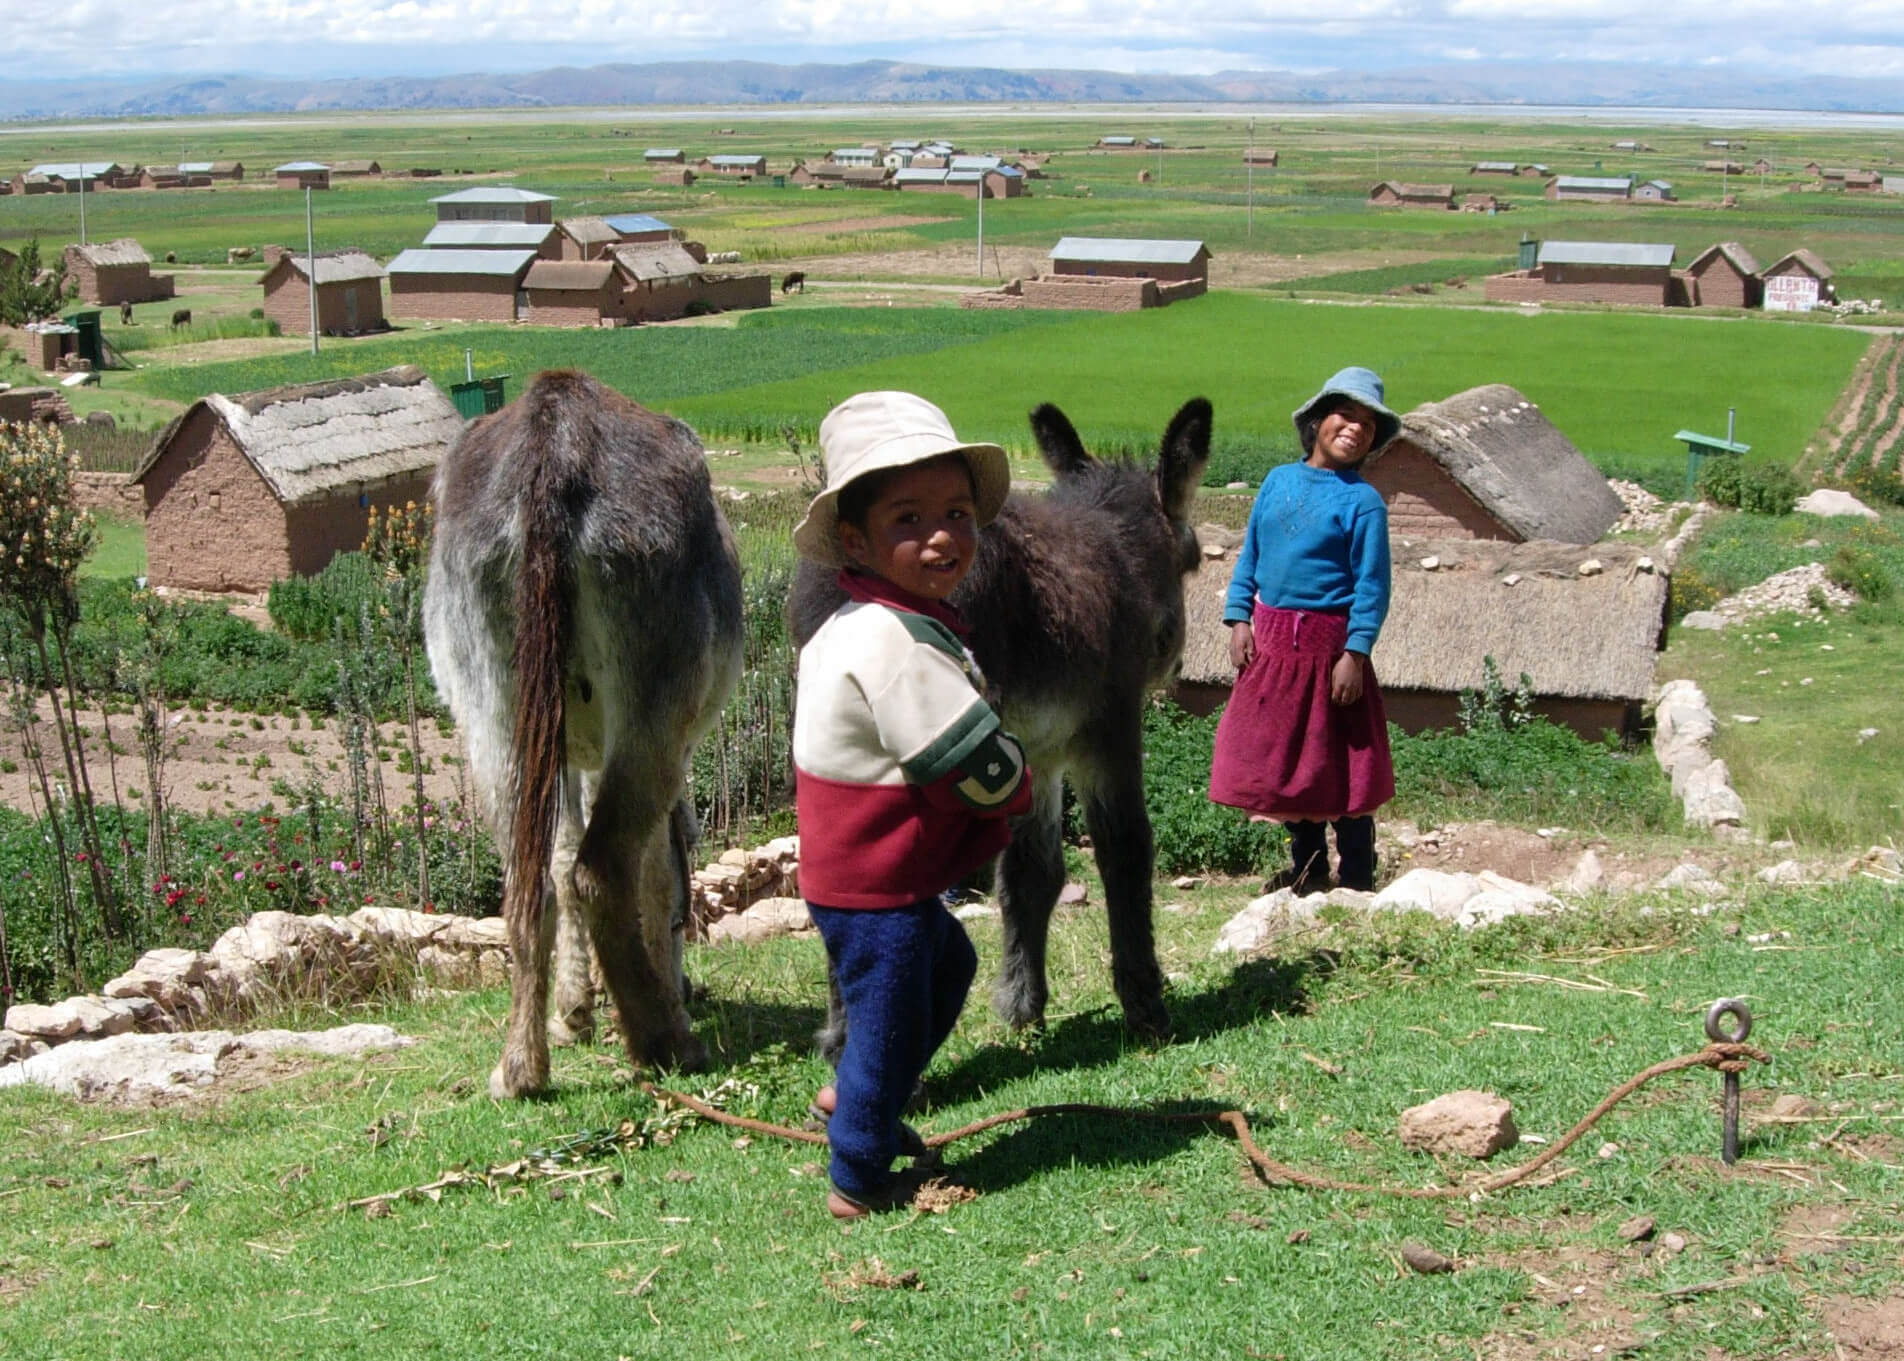 Dedicated to Ending Extreme Poverty in the Peruvian Highland Villages